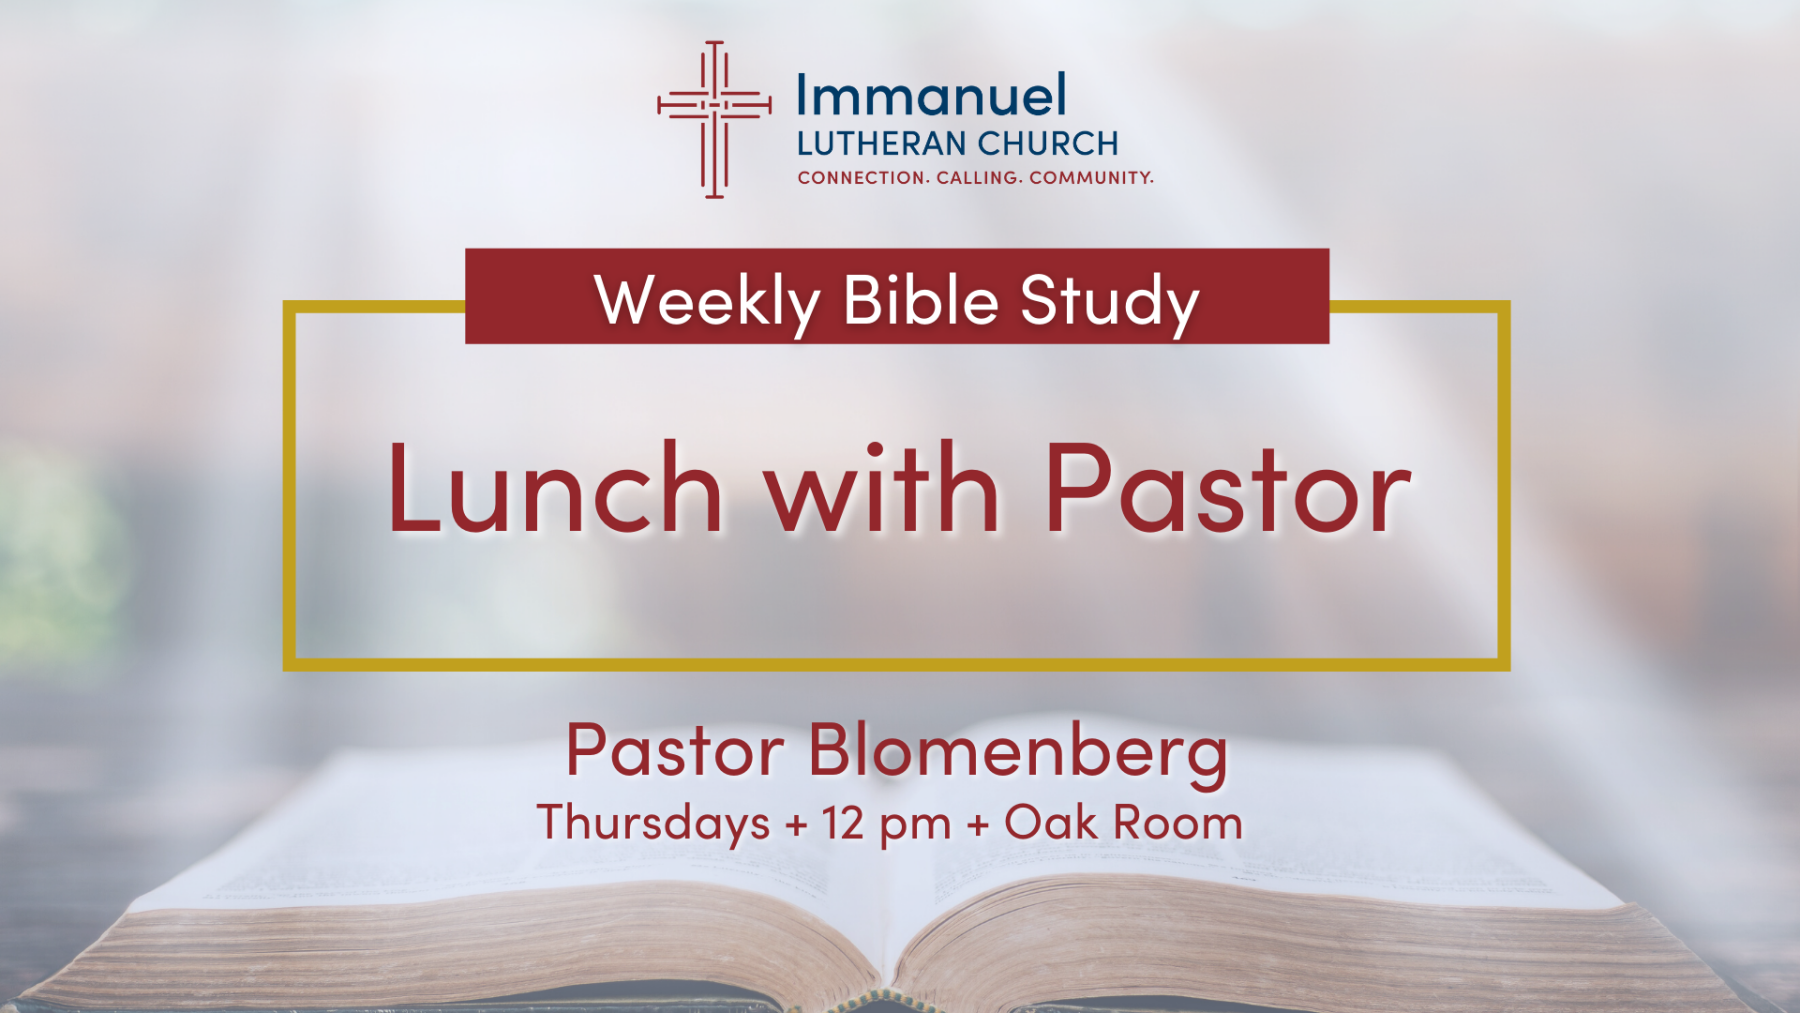 Lunch with Pastor